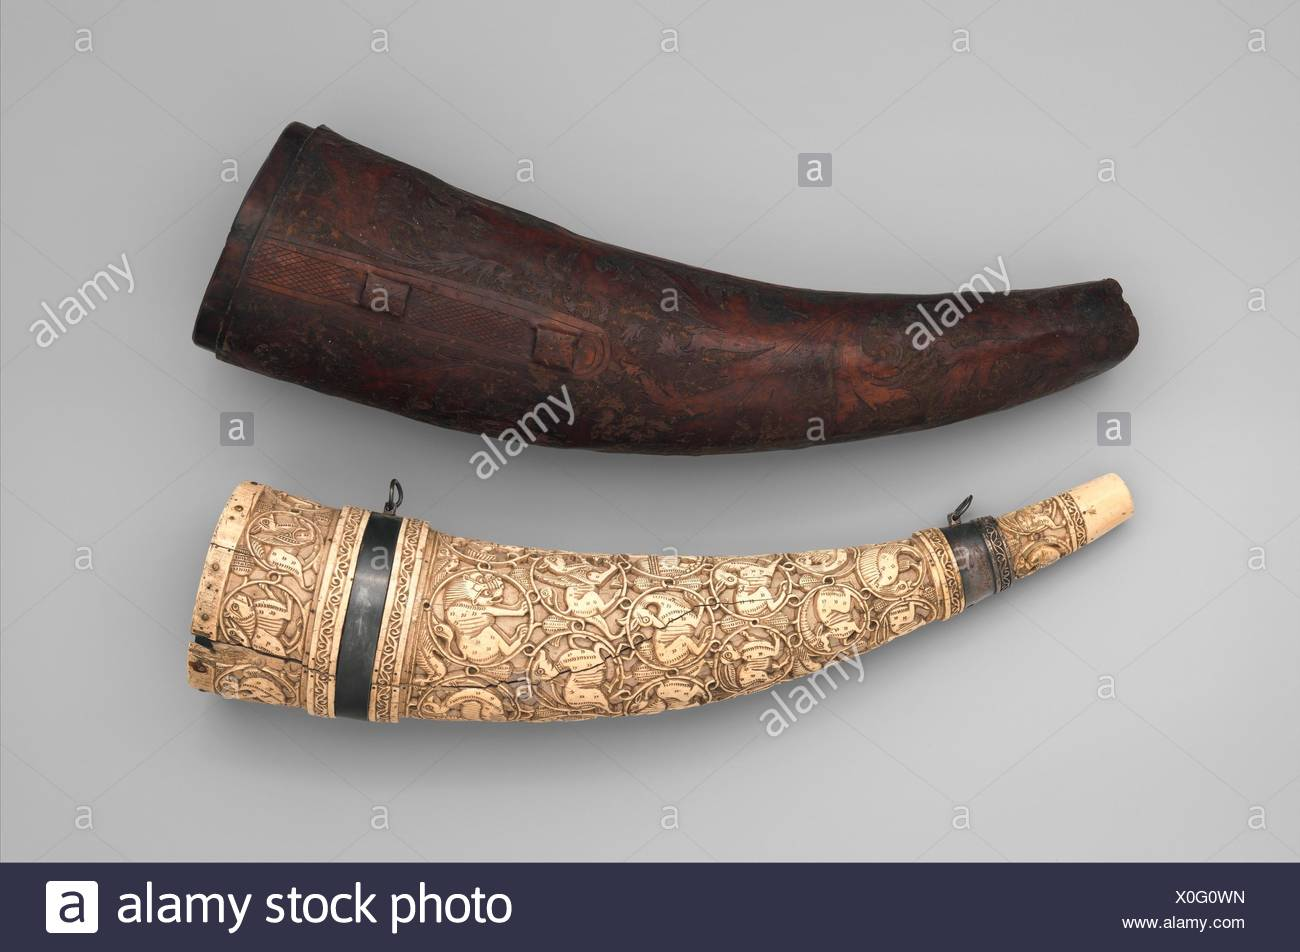 Horn (Oliphant) with Case. Date: horn, 11th-12th century; case, 16th century; Culture: South Italian; Medium: Ivory, silver, leather; Dimensions: Stock Photo